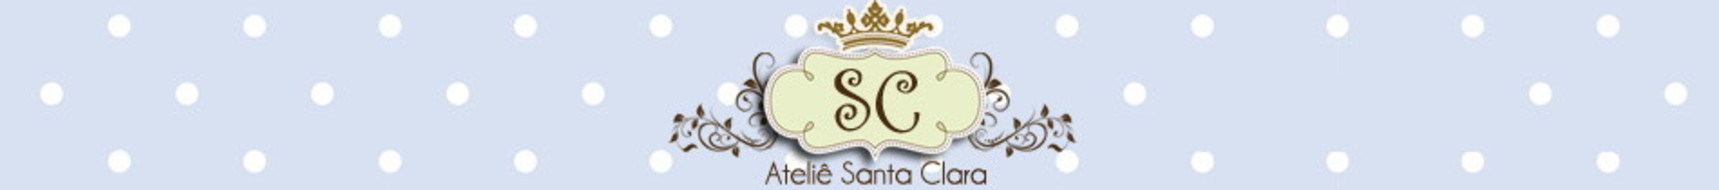 Ateli Santa Clara 